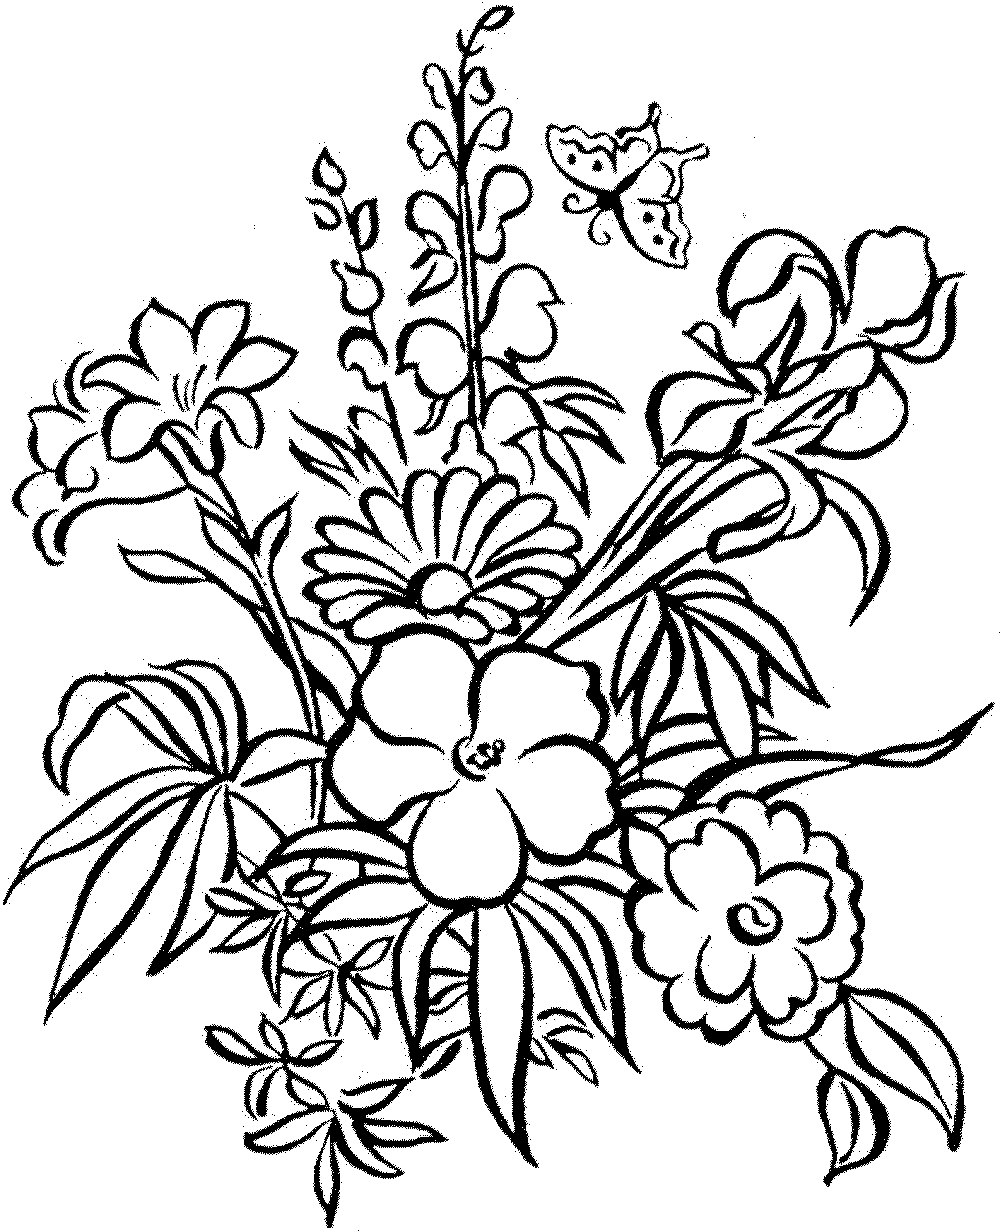 pictures of flowers to color awesome flower coloring pages to print top free color to pictures of flowers